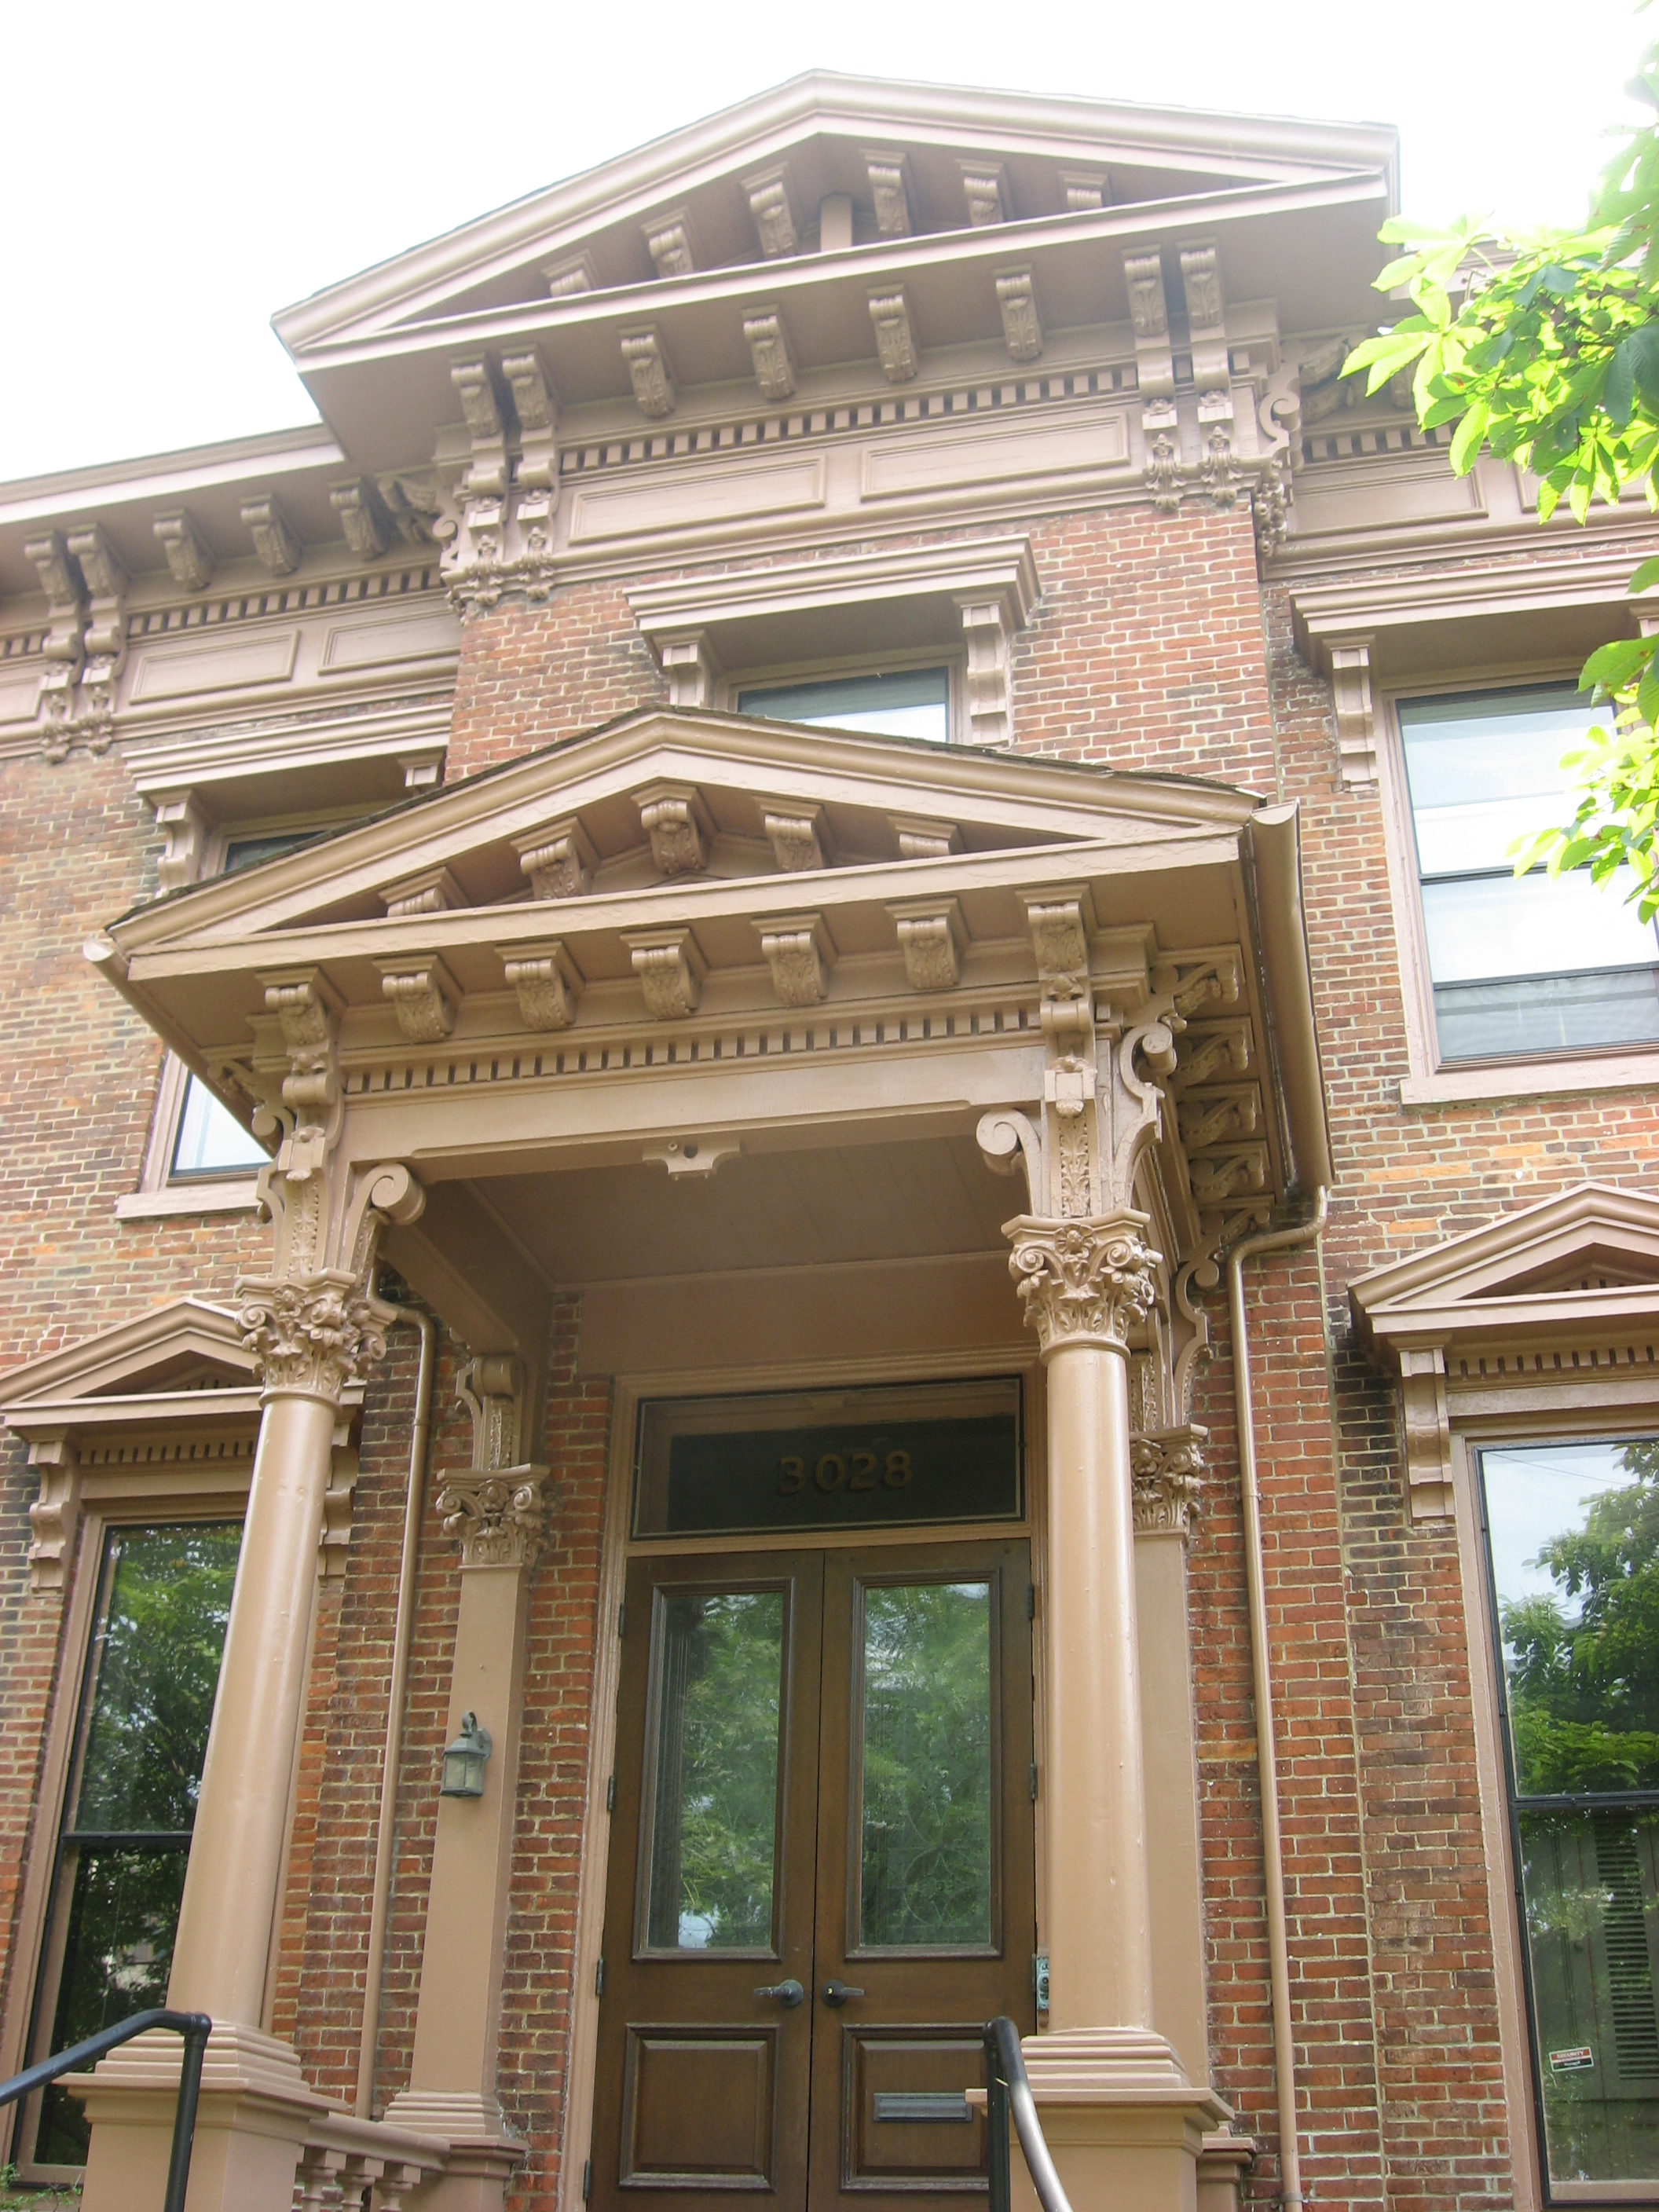 House Entrance file:george merwin house entrance - wikimedia commons